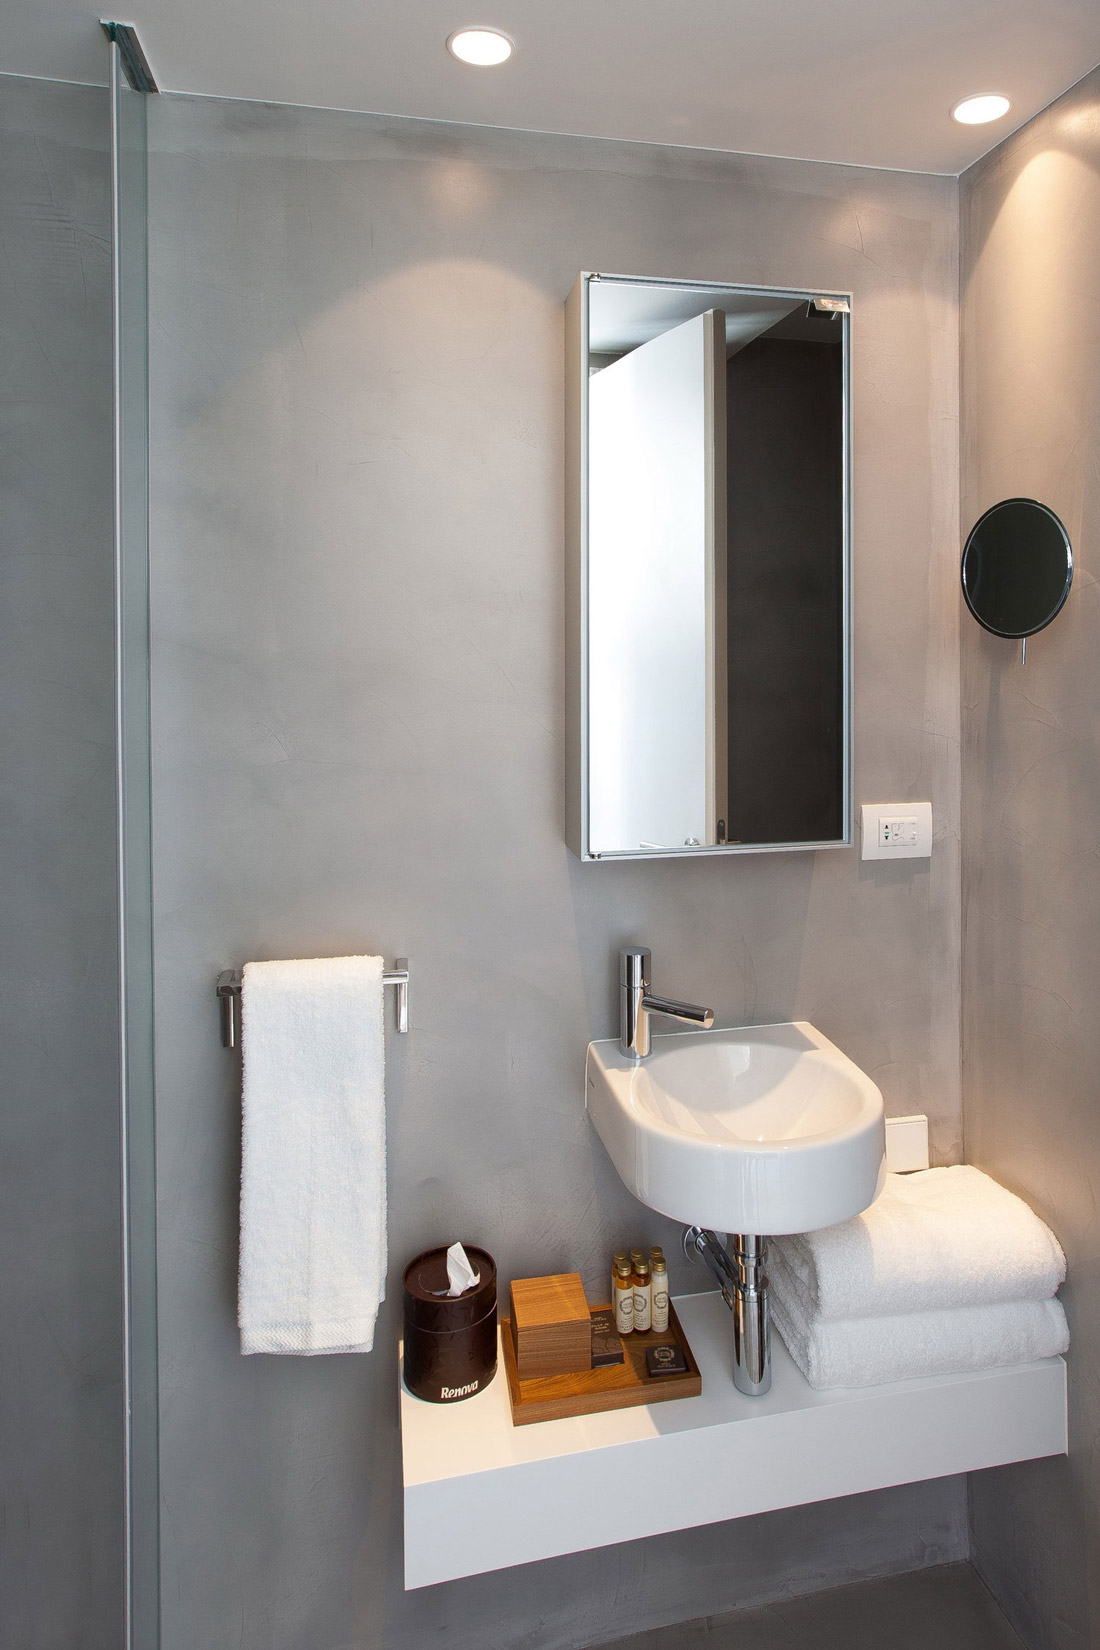 Bathroom Sink, Mirror, Boutique Hotel in the Heart of Alfama, Lisbon